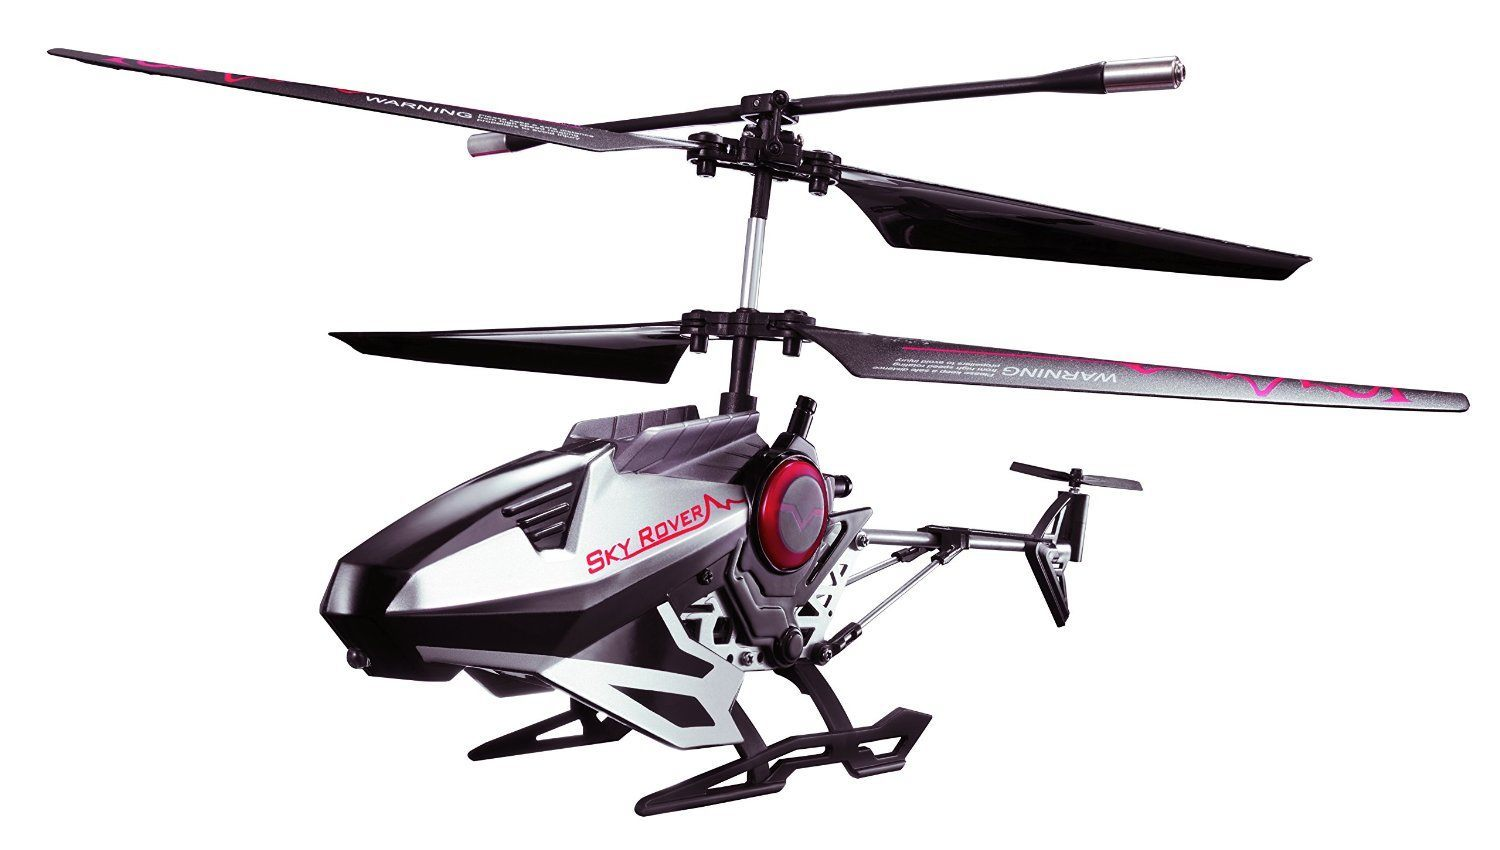 sky rover voice command heli vehicle hot holiday toys 2015 images